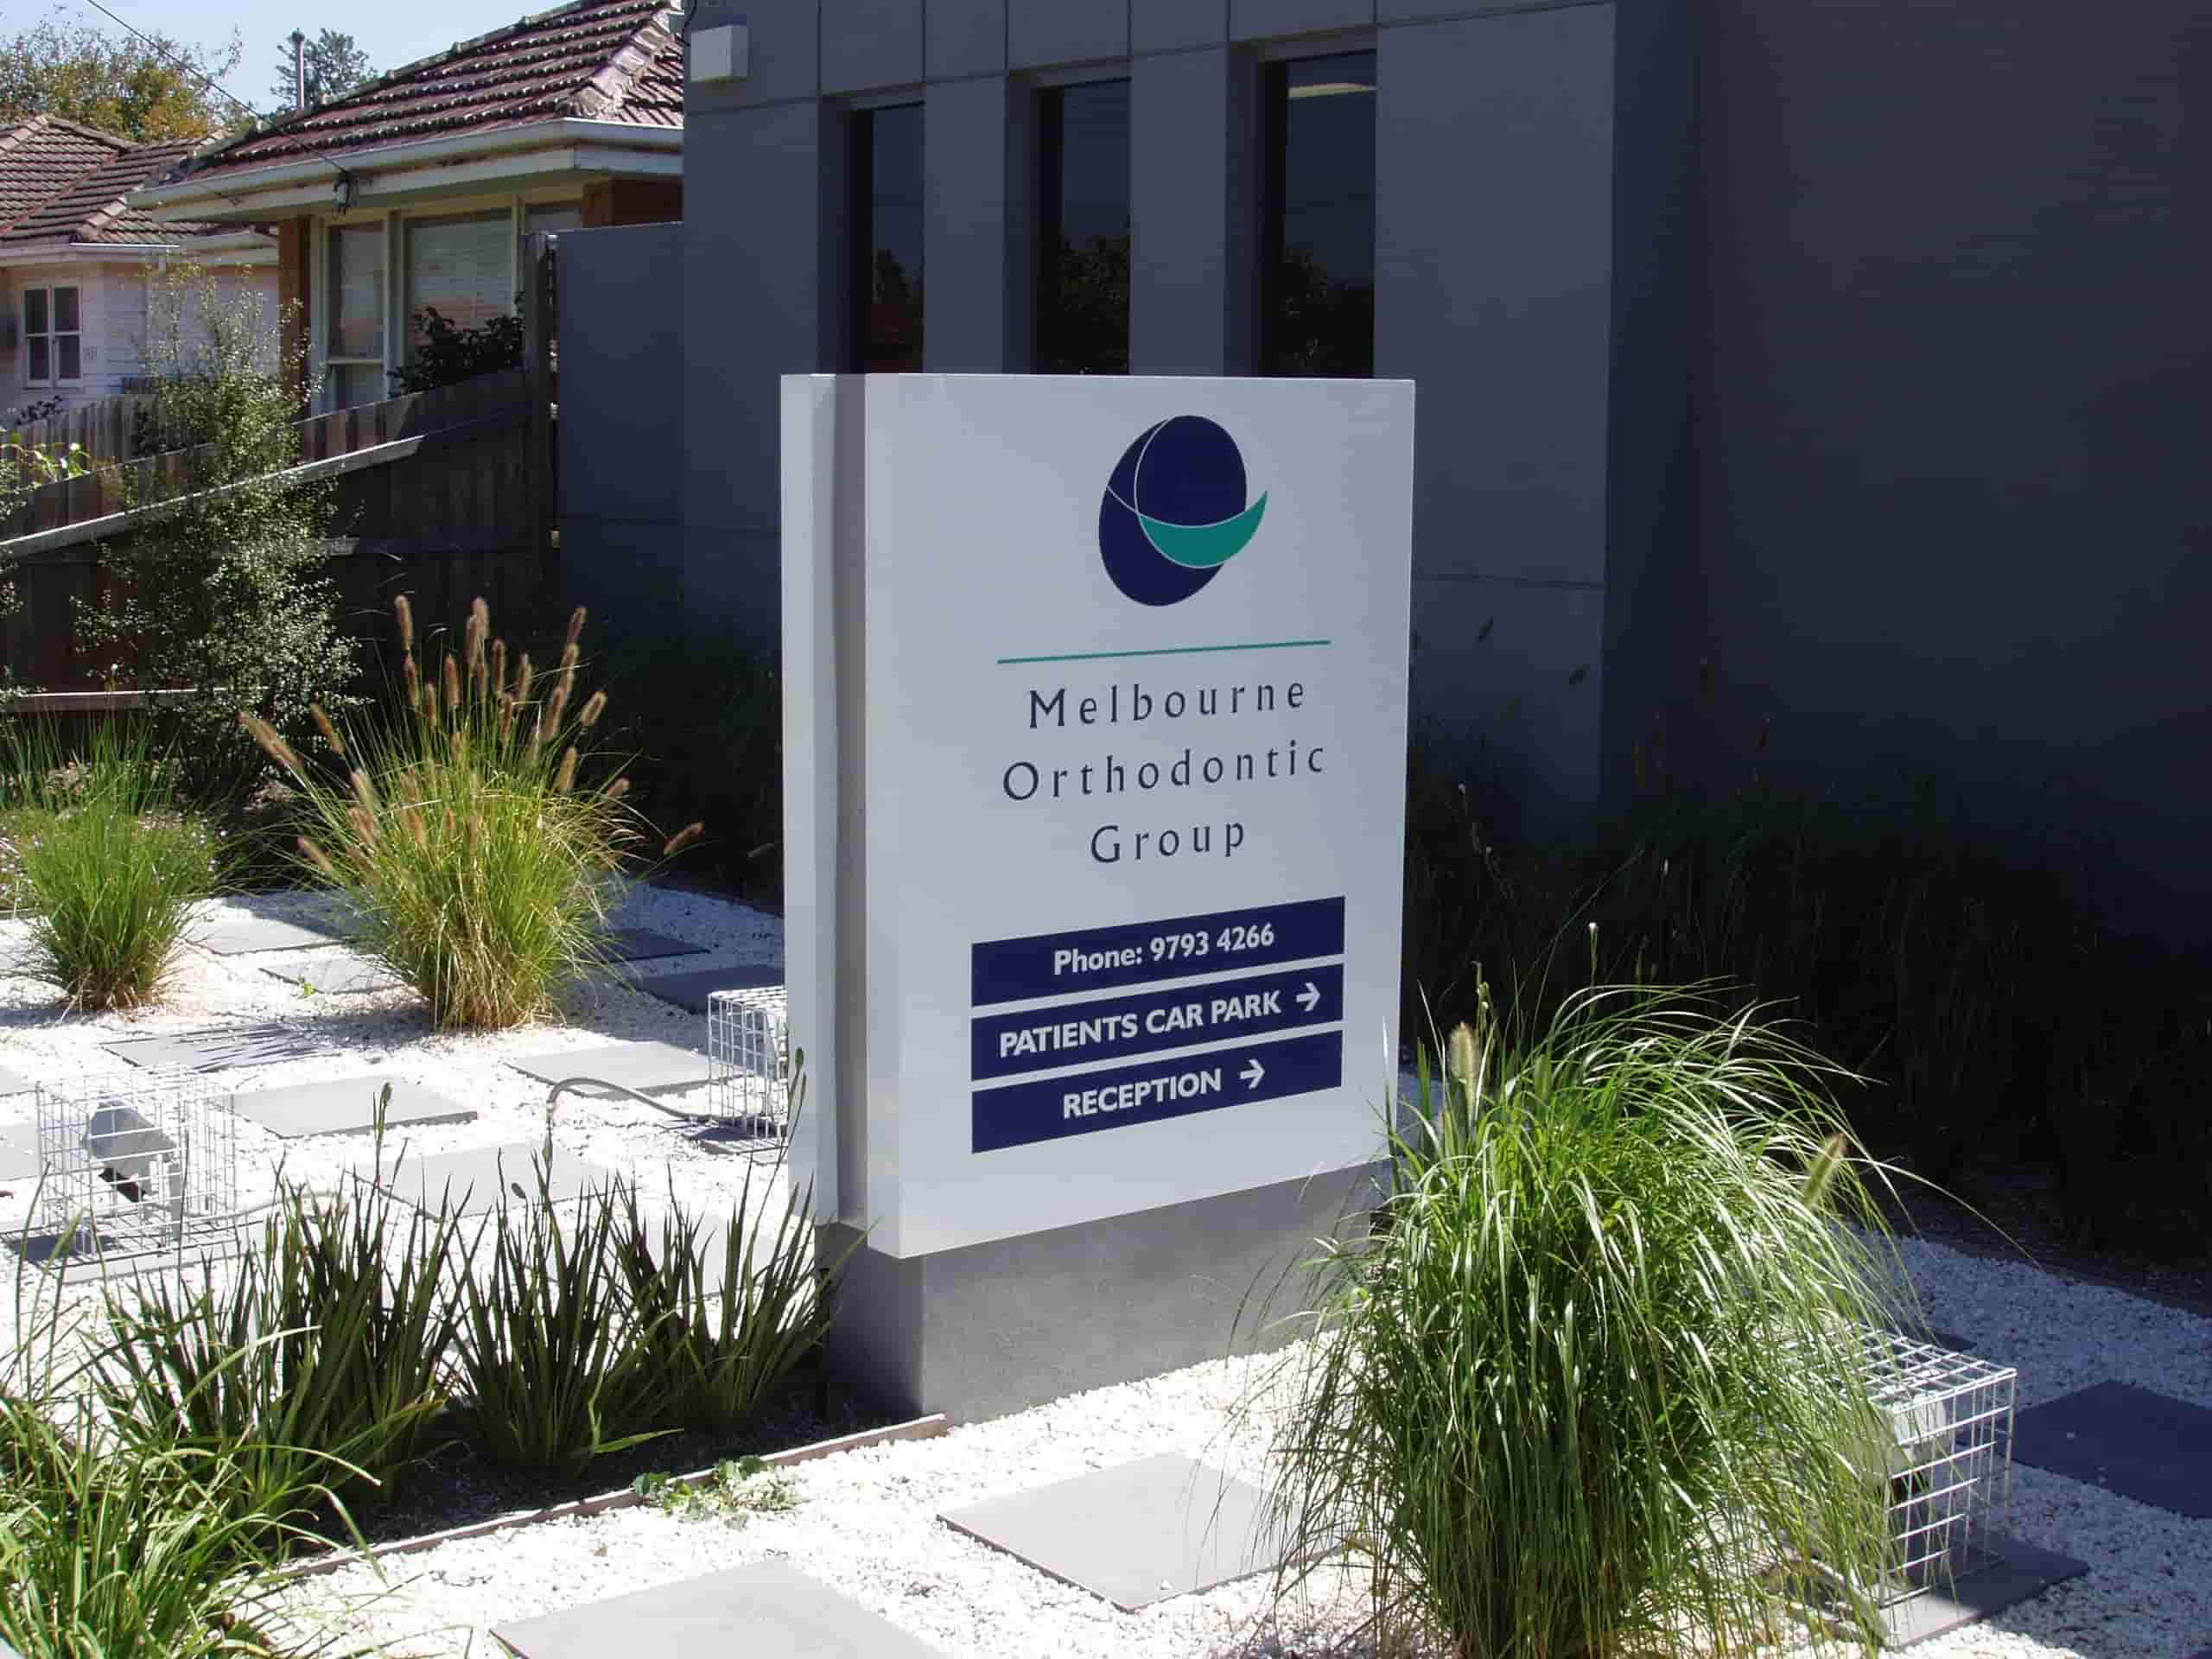 garden signs in Melbourne by jag signs for melbourne orthodontic group